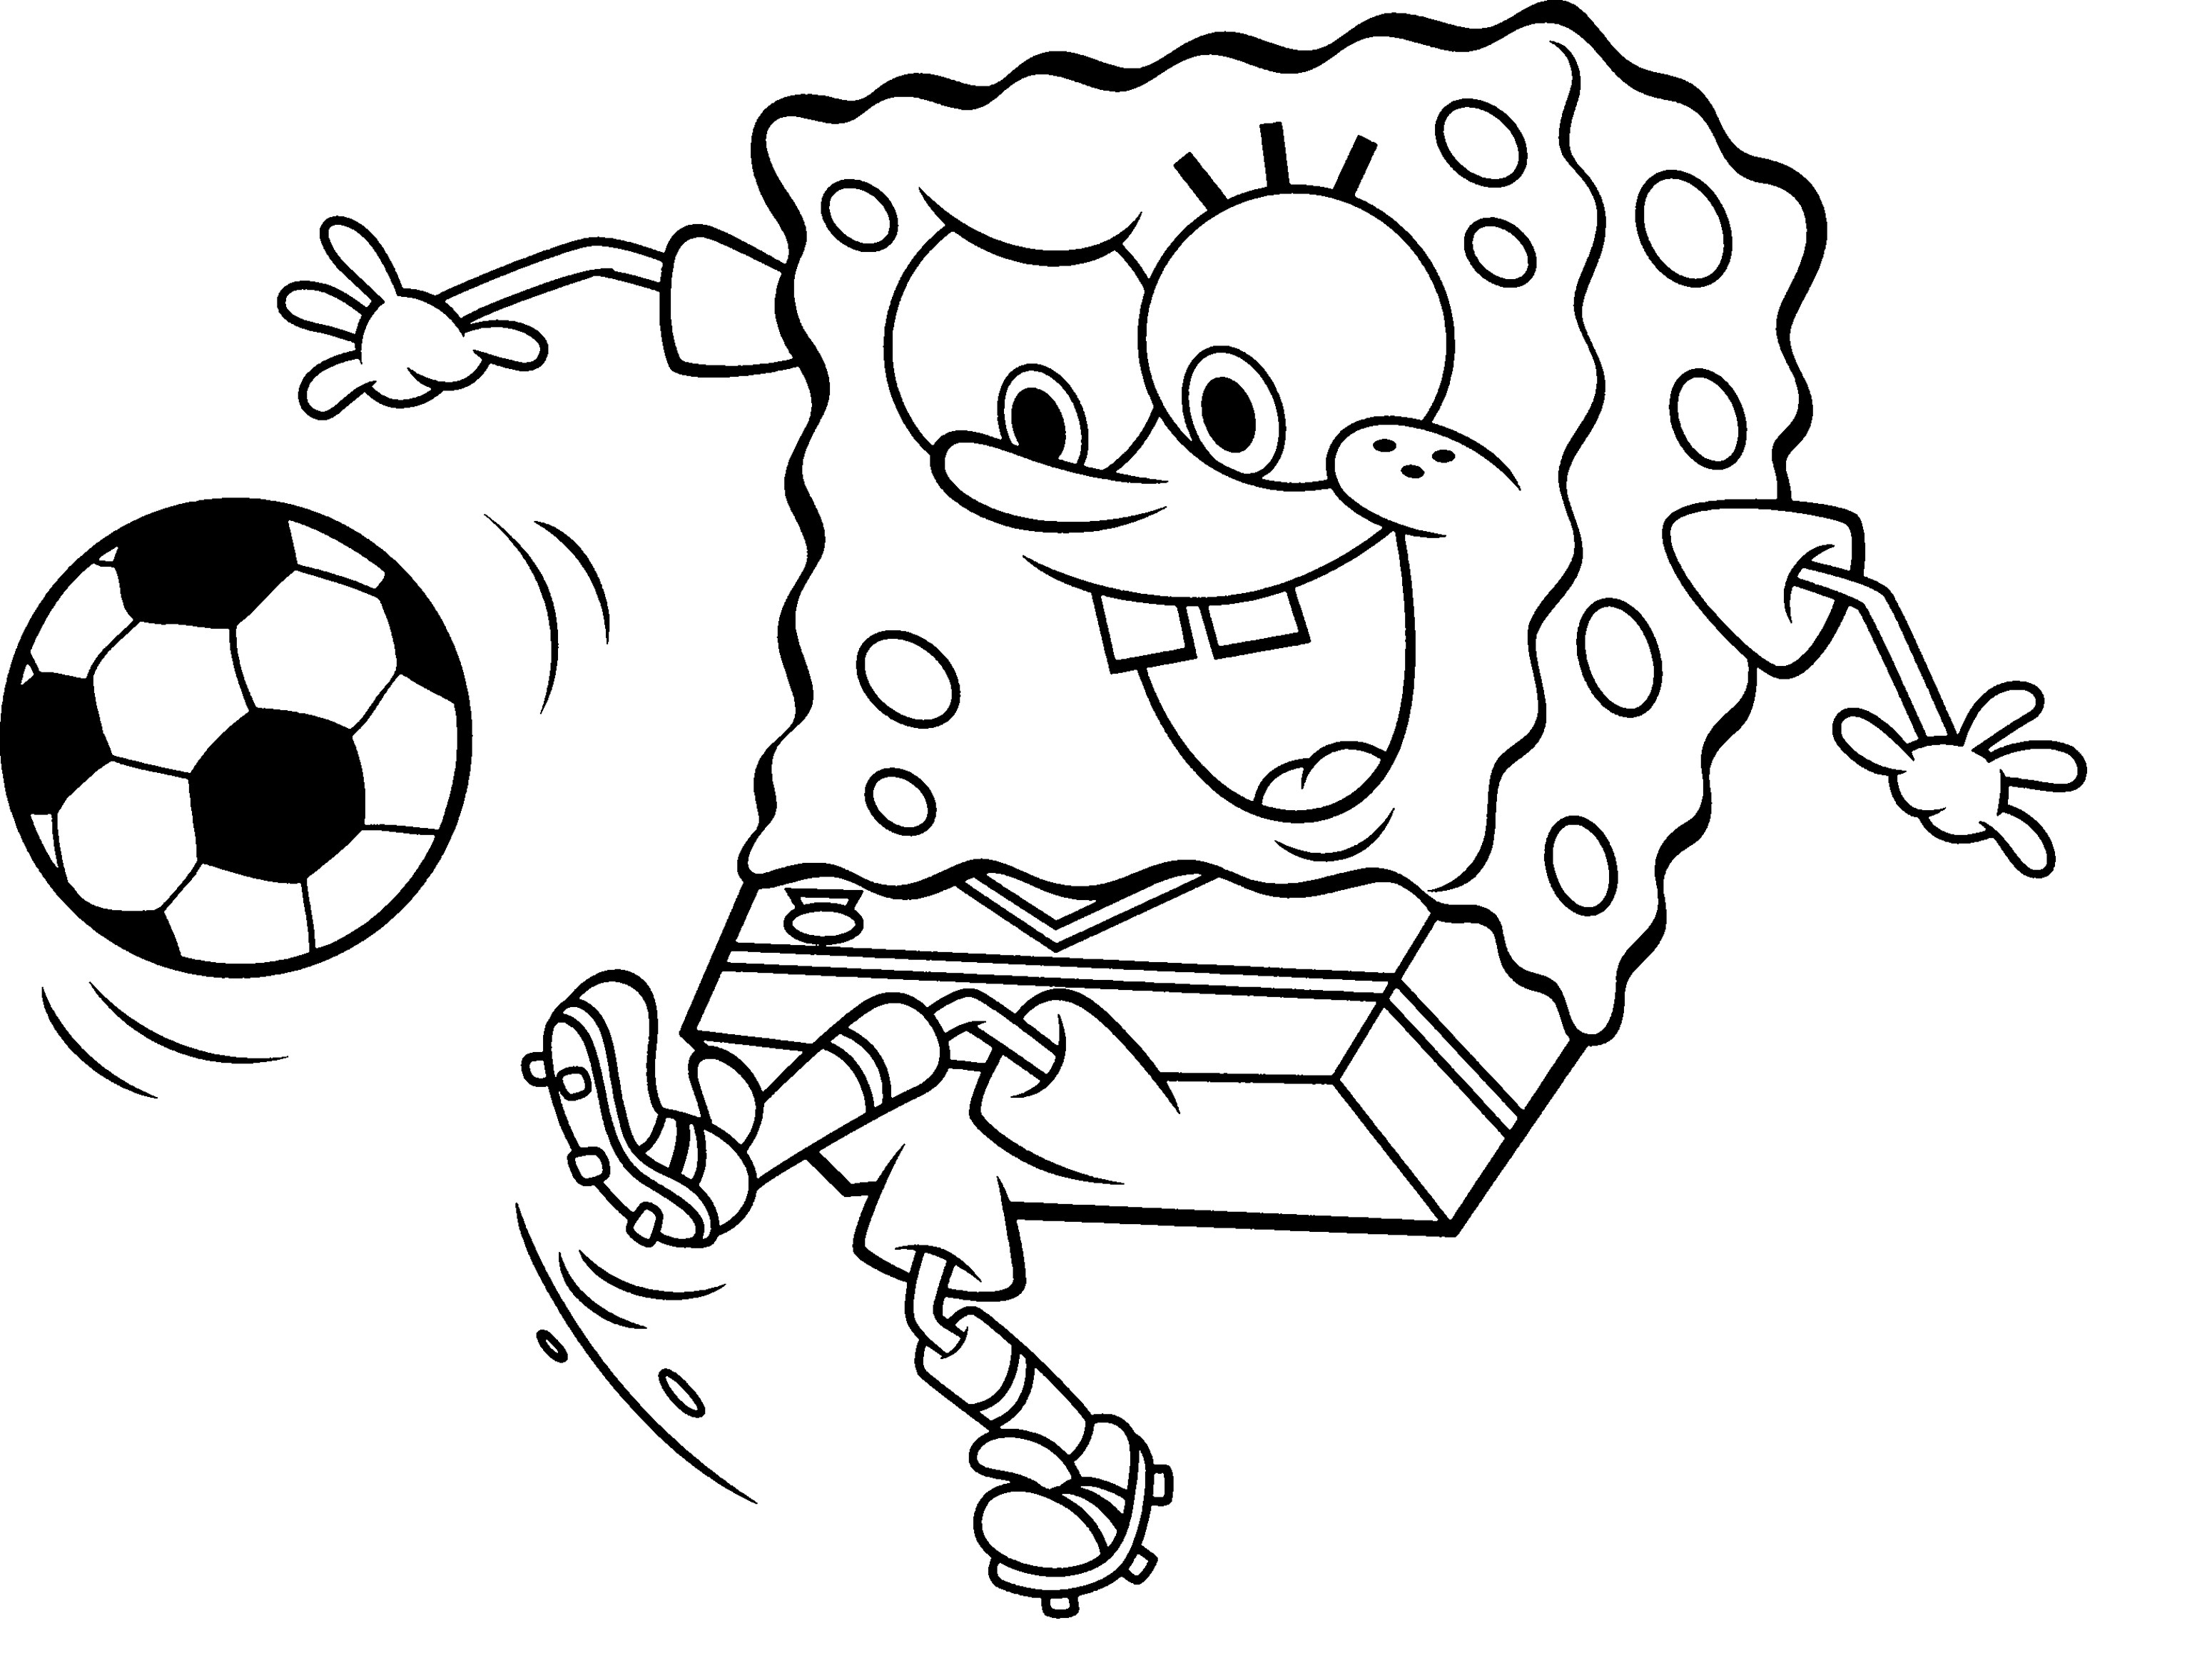 coloring pages for seniors coloring pages for seniors coloring for seniors pages